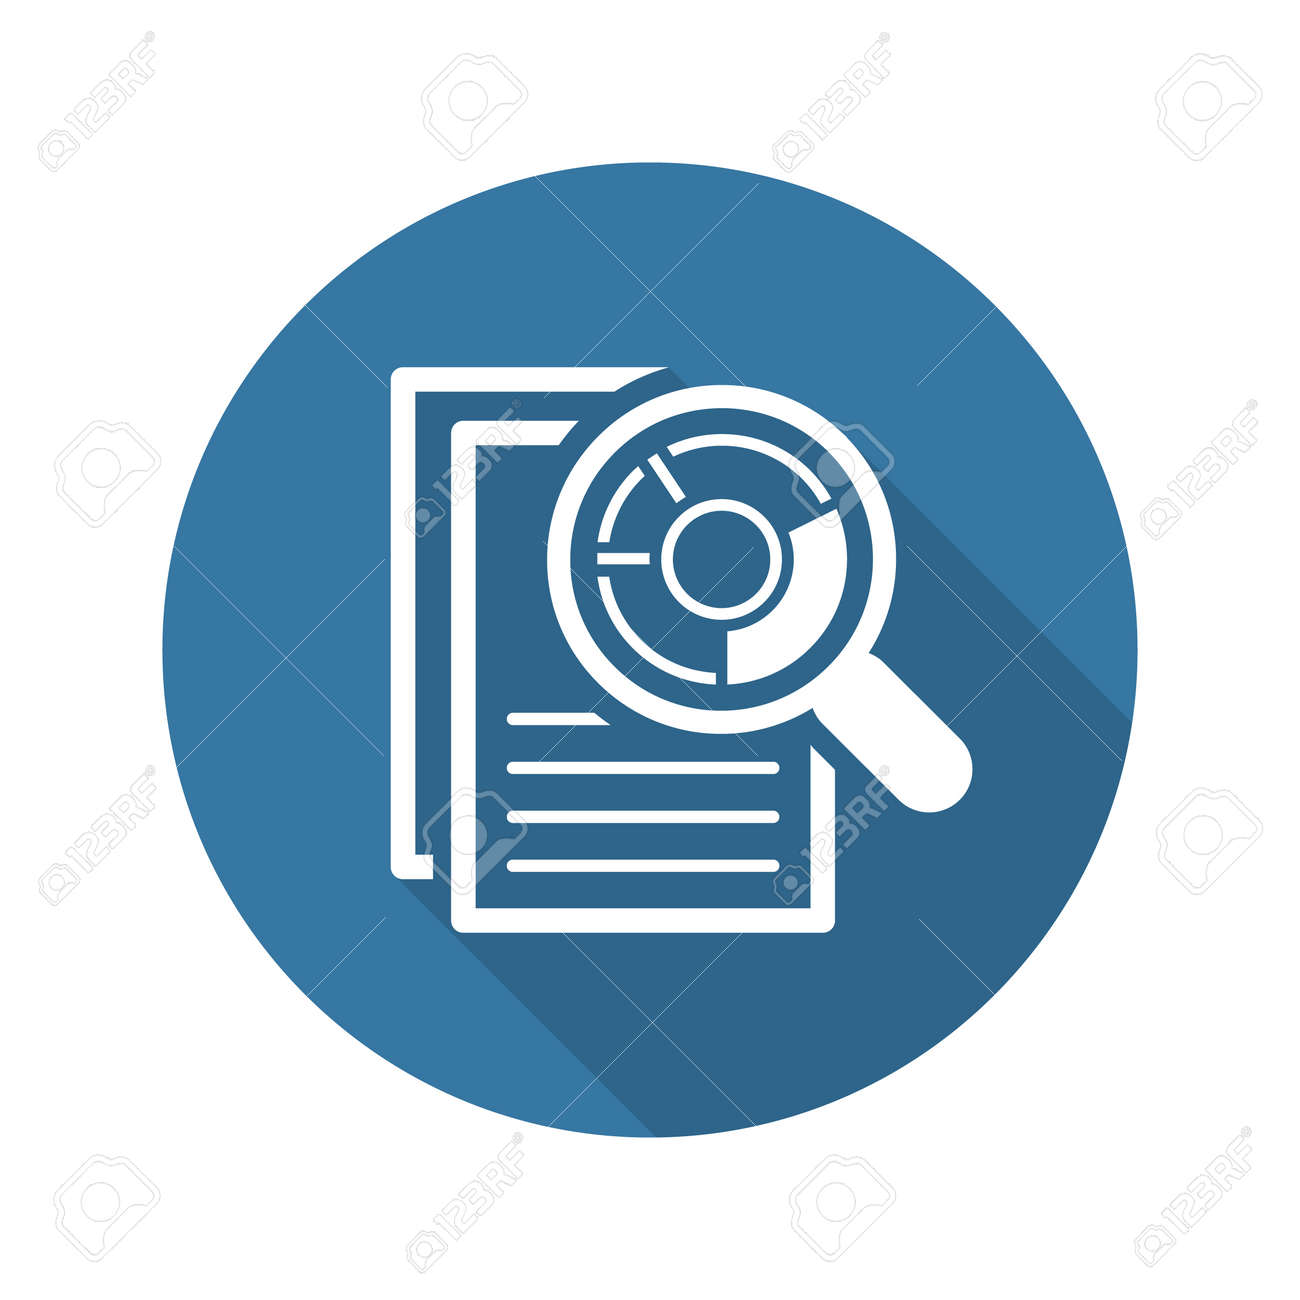 Audit Icon. Business Concept. Flat Design. Isolated Illustration. Long Shadow. - 45248769